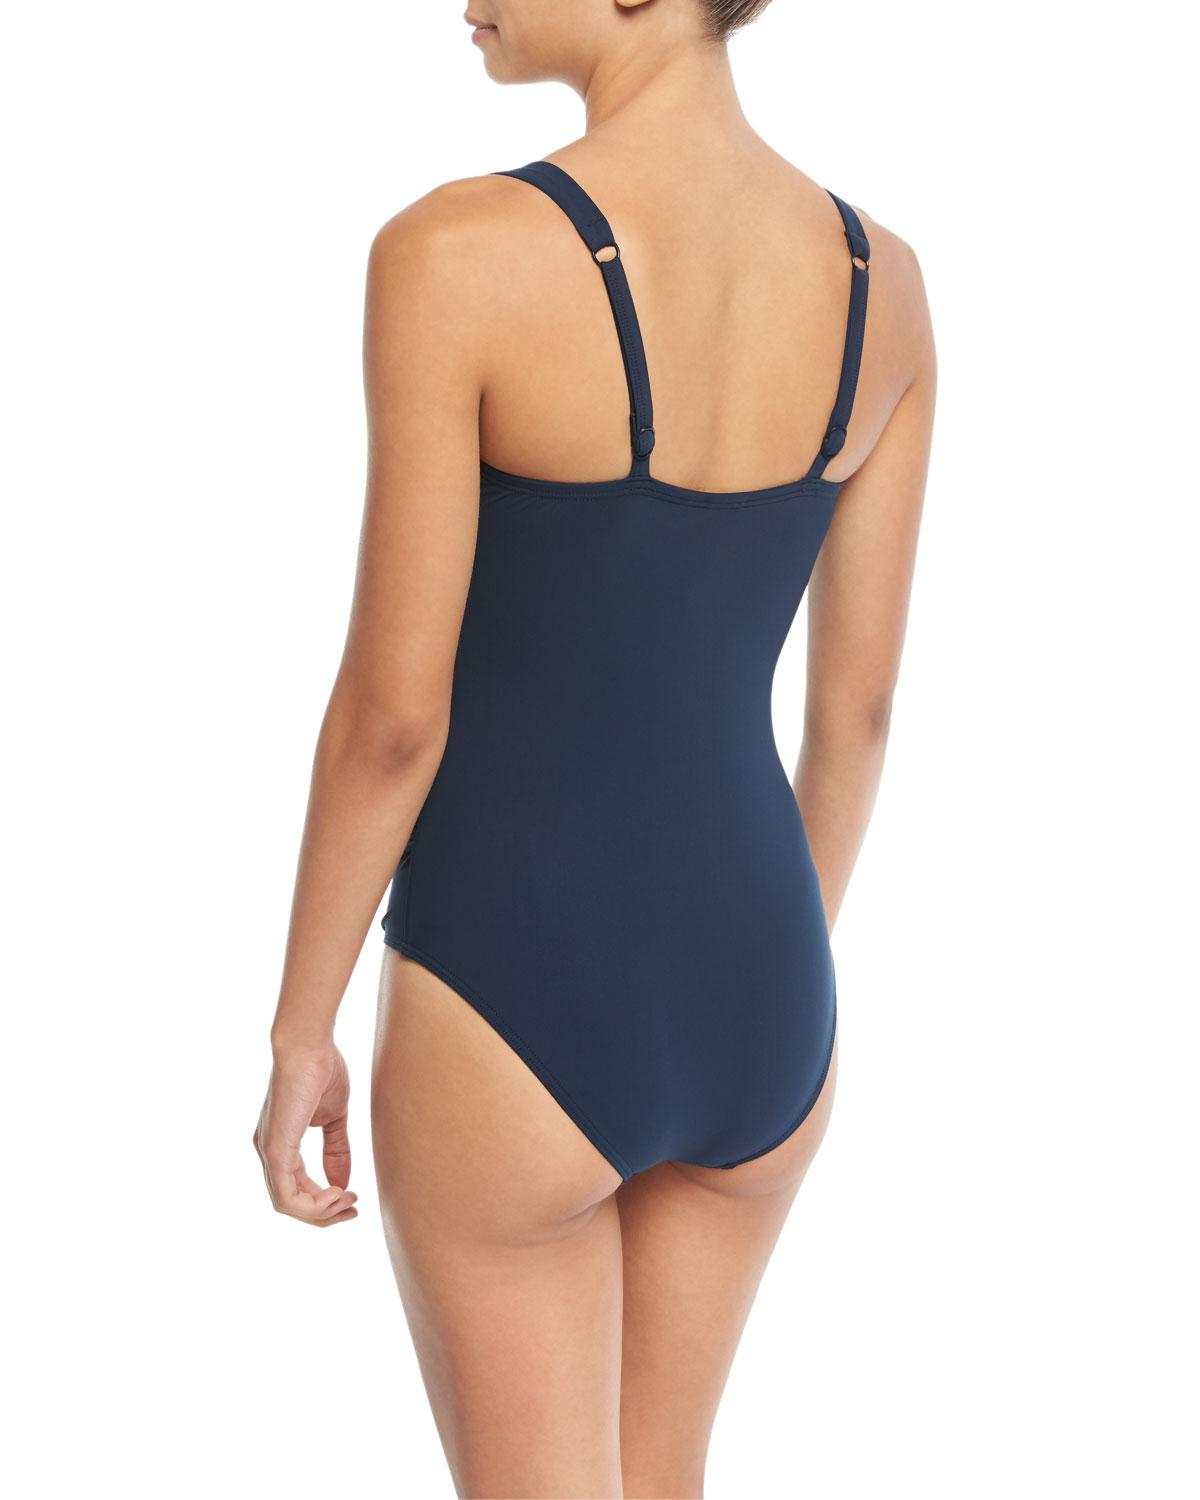 fa5be99435201 Lyst - Jets by Jessika Allen Deep-v Cross-front One-piece Swimsuit (d dd  Cup) in Blue - Save 65%